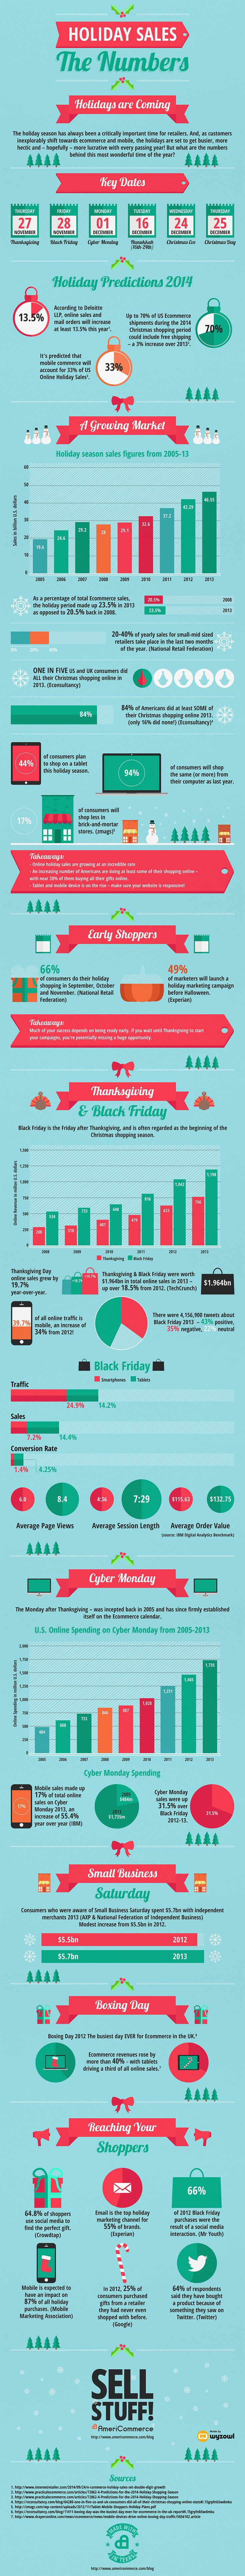 Digital-Marketing-Holiday-Sales-The-Numbers-infographic-Marketing-Holiday-Business-Ecommece Digital Marketing : Holiday Sales - The Numbers #infographic #Marketing #Holiday #Business #Ecommece